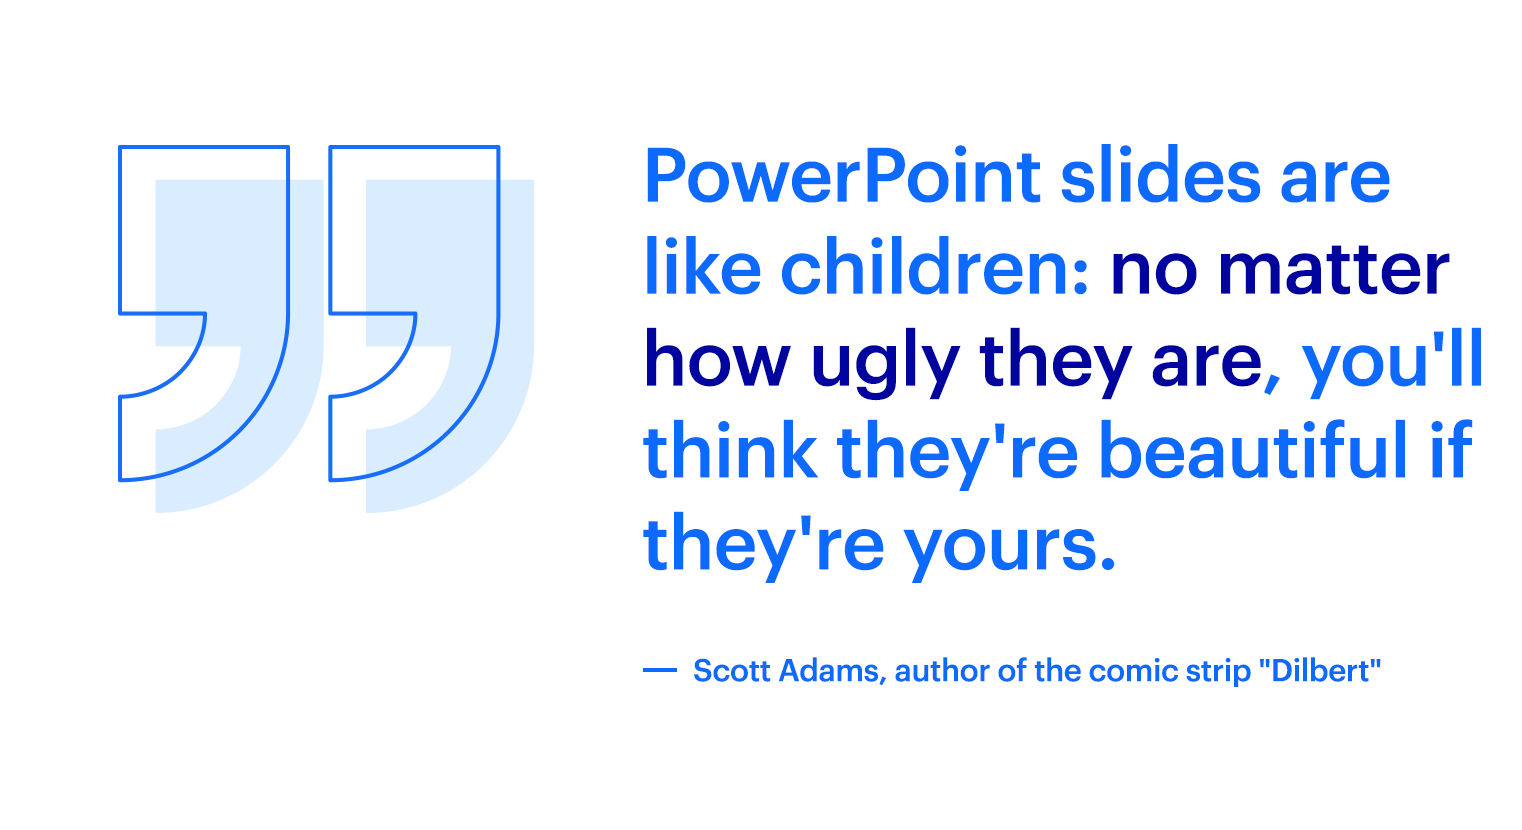 Power points slided quote from Scott Adams